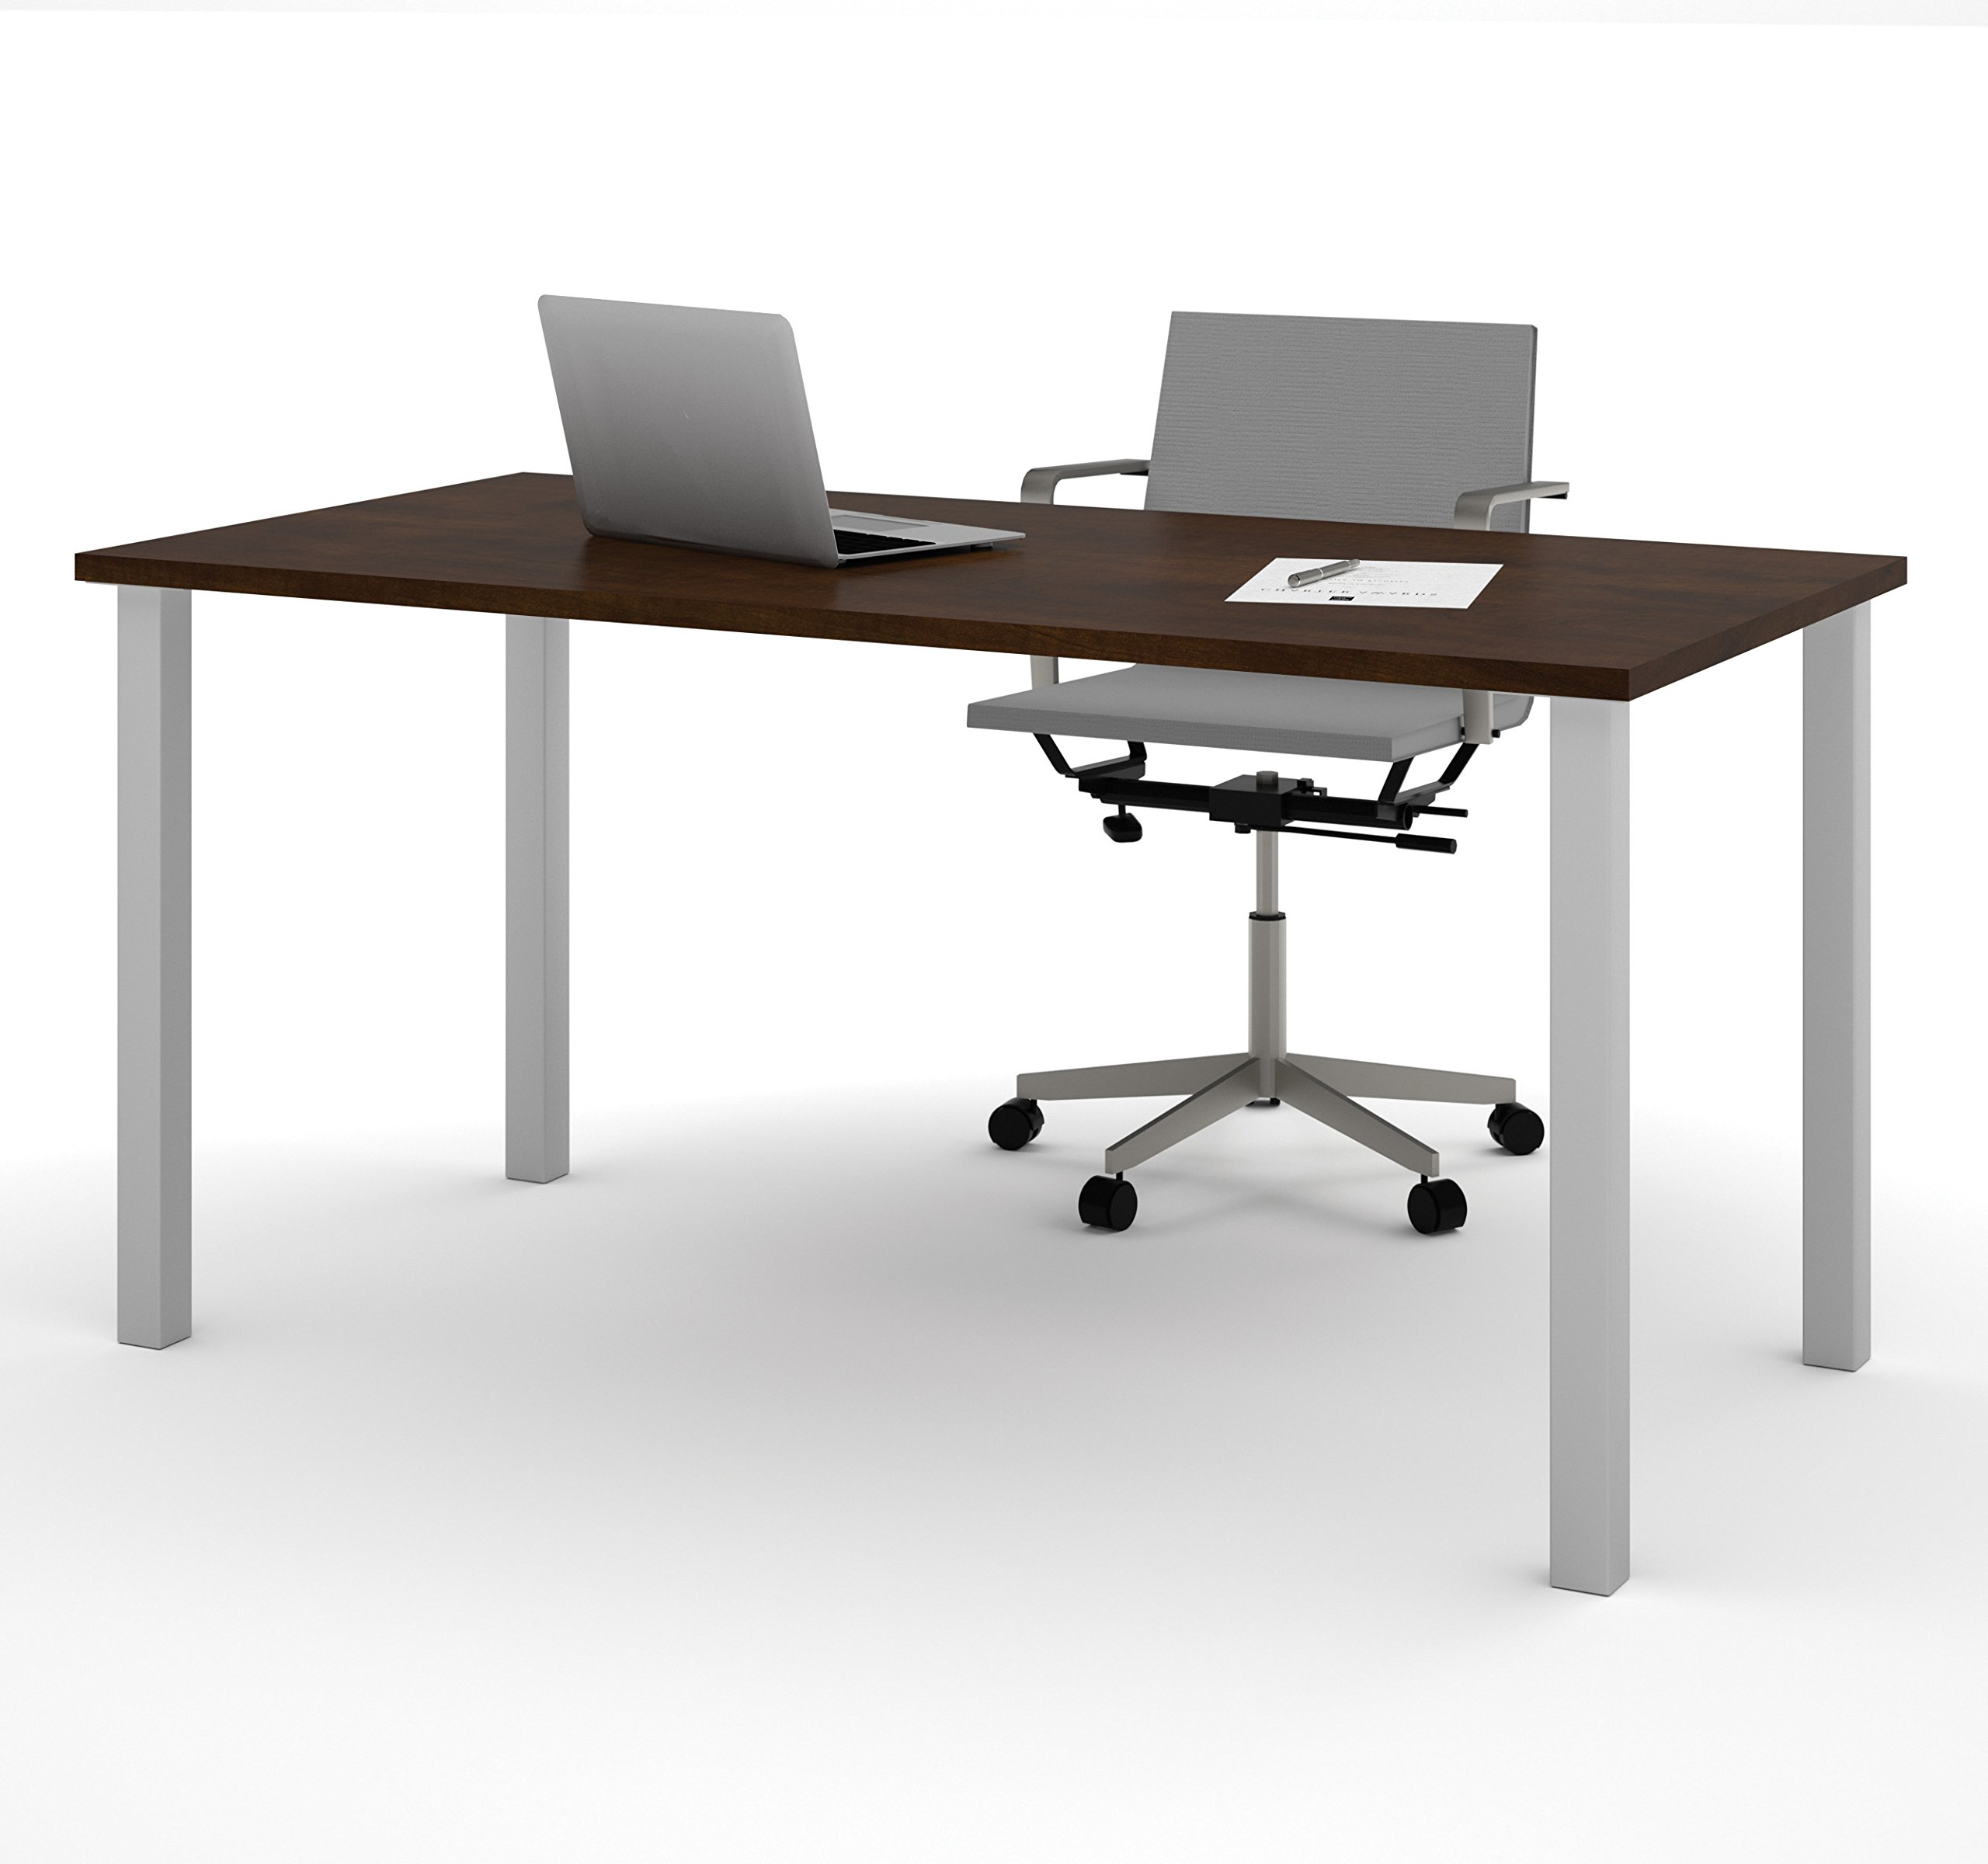 BESTAR Table with Square Metal Legs, 30 x 60'', Chocolate